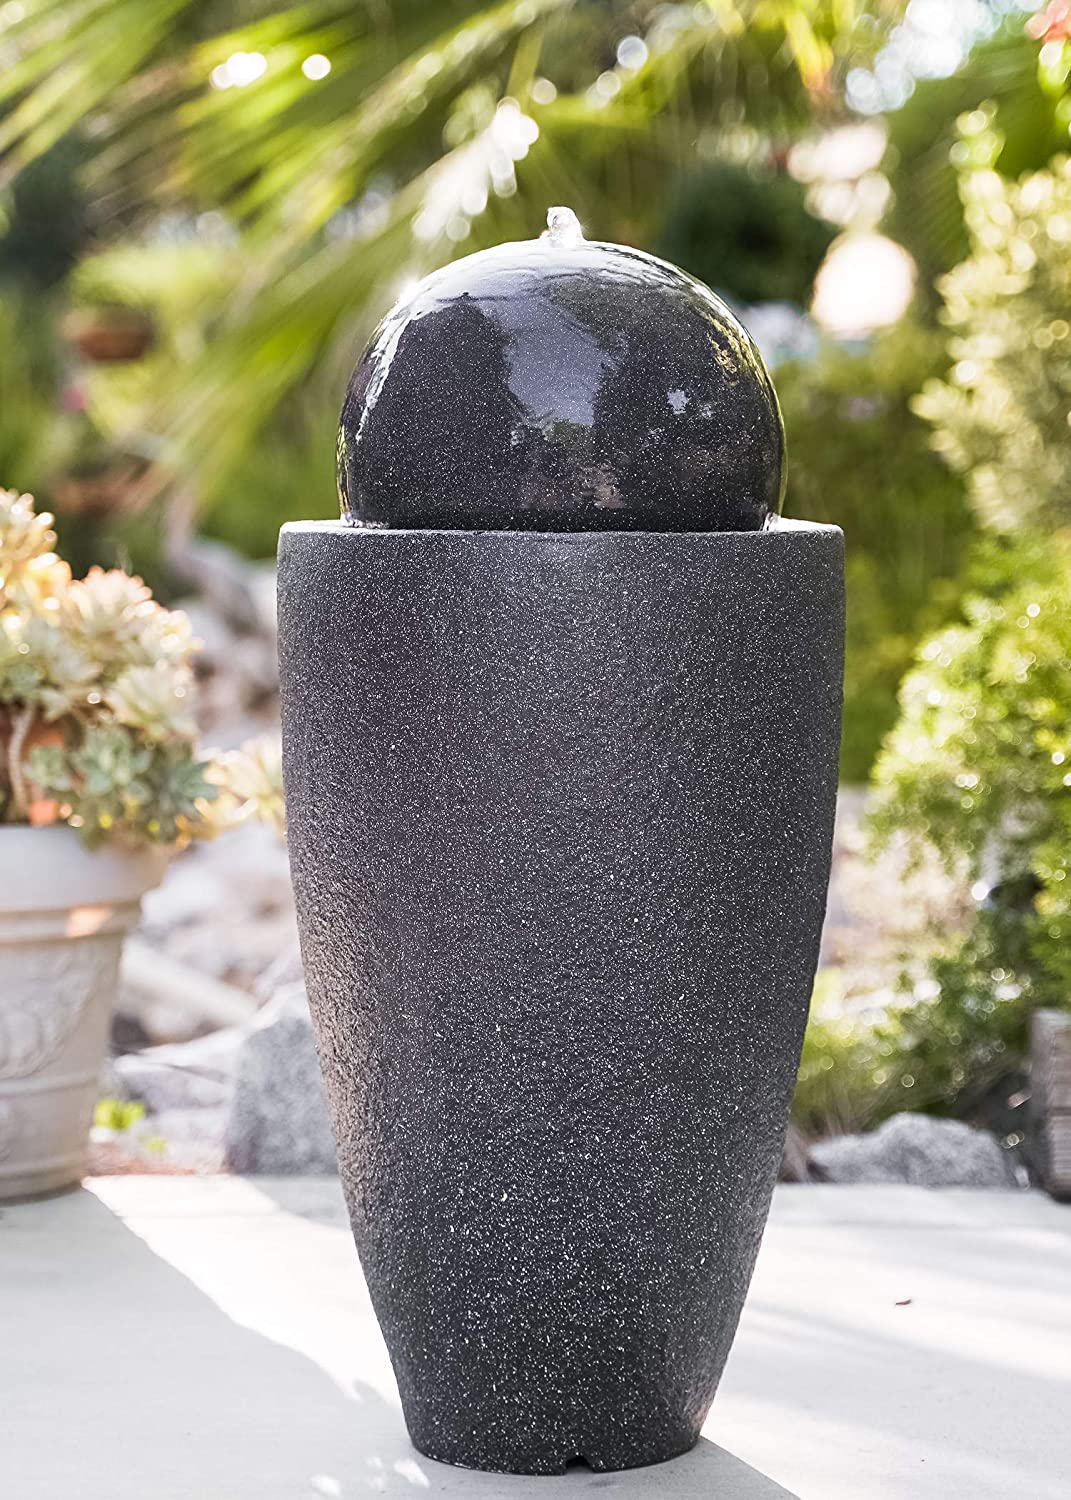 XBrand GE2612FTBK Modern Stone Textured Round Sphere Water Fountain w/LED Lights, Indoor Outdoor Décor, 25.6 Inch Tall, Black